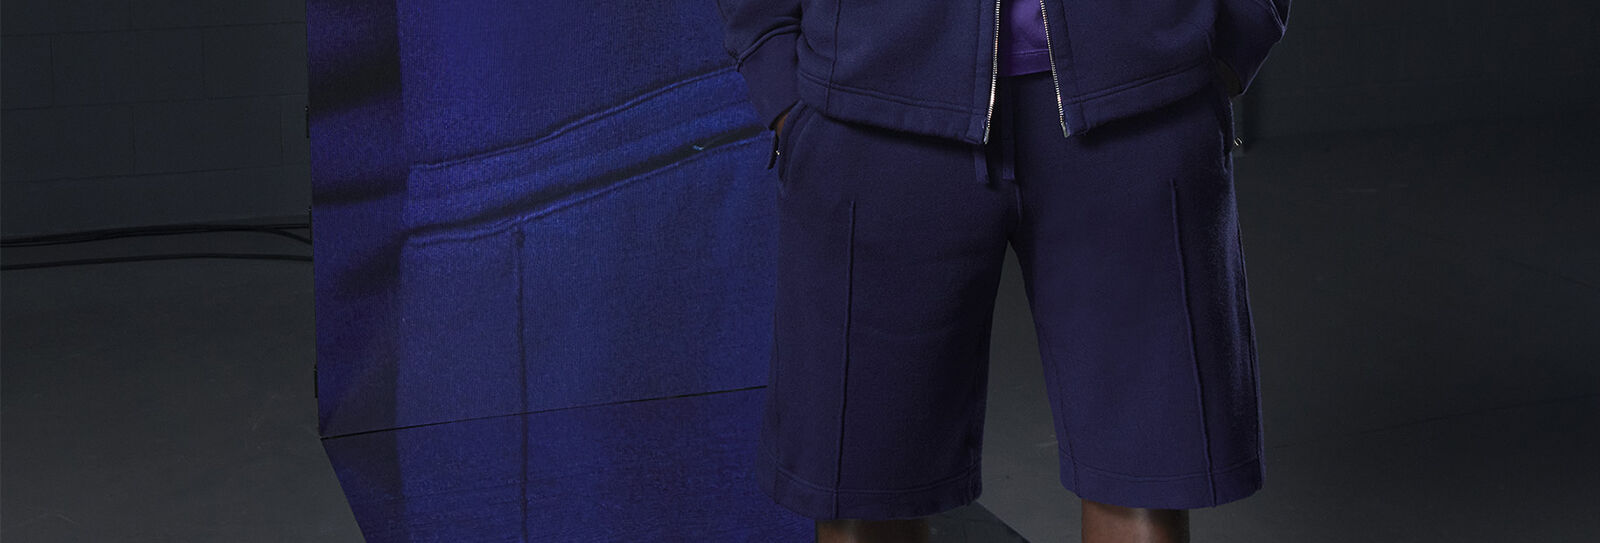 Close-up of model wearing blue t-shirt, jacket and shorts alongside an extreme close-up of the stitching.